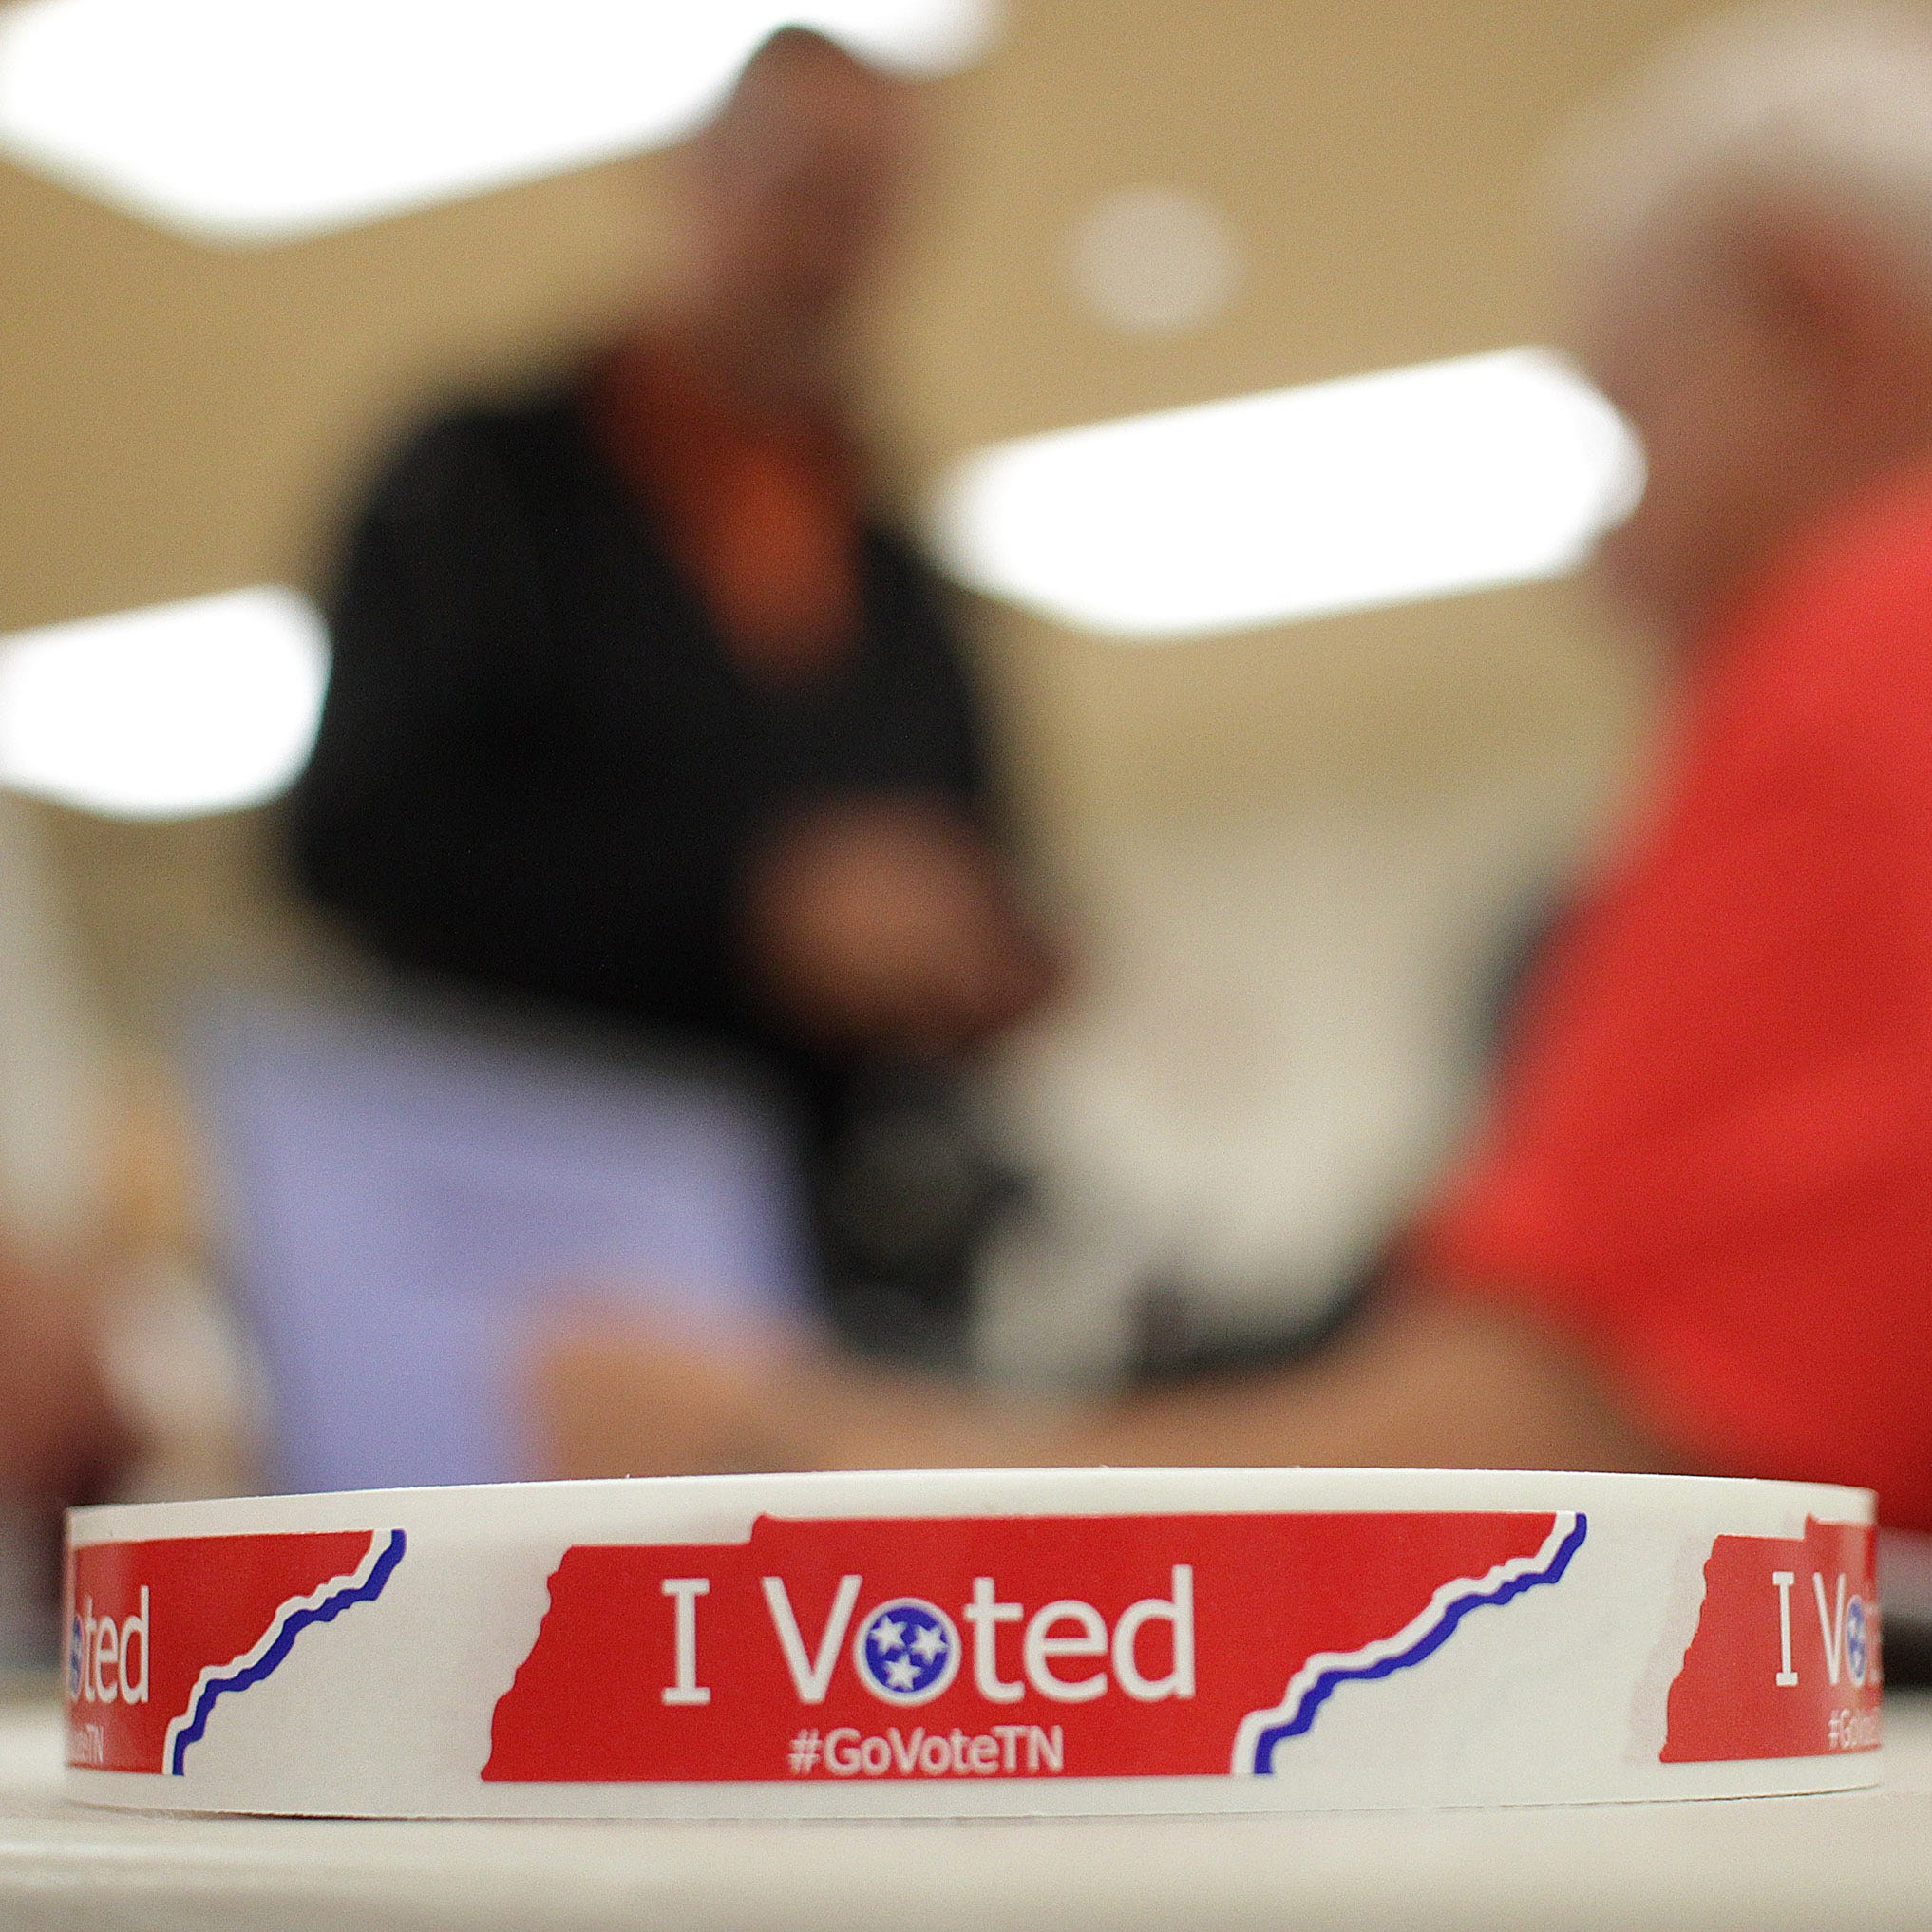 A roll of I Voted stickers waits for those who cast their votes at Volunteer State Community College on Tuesday, November 6, 2018.